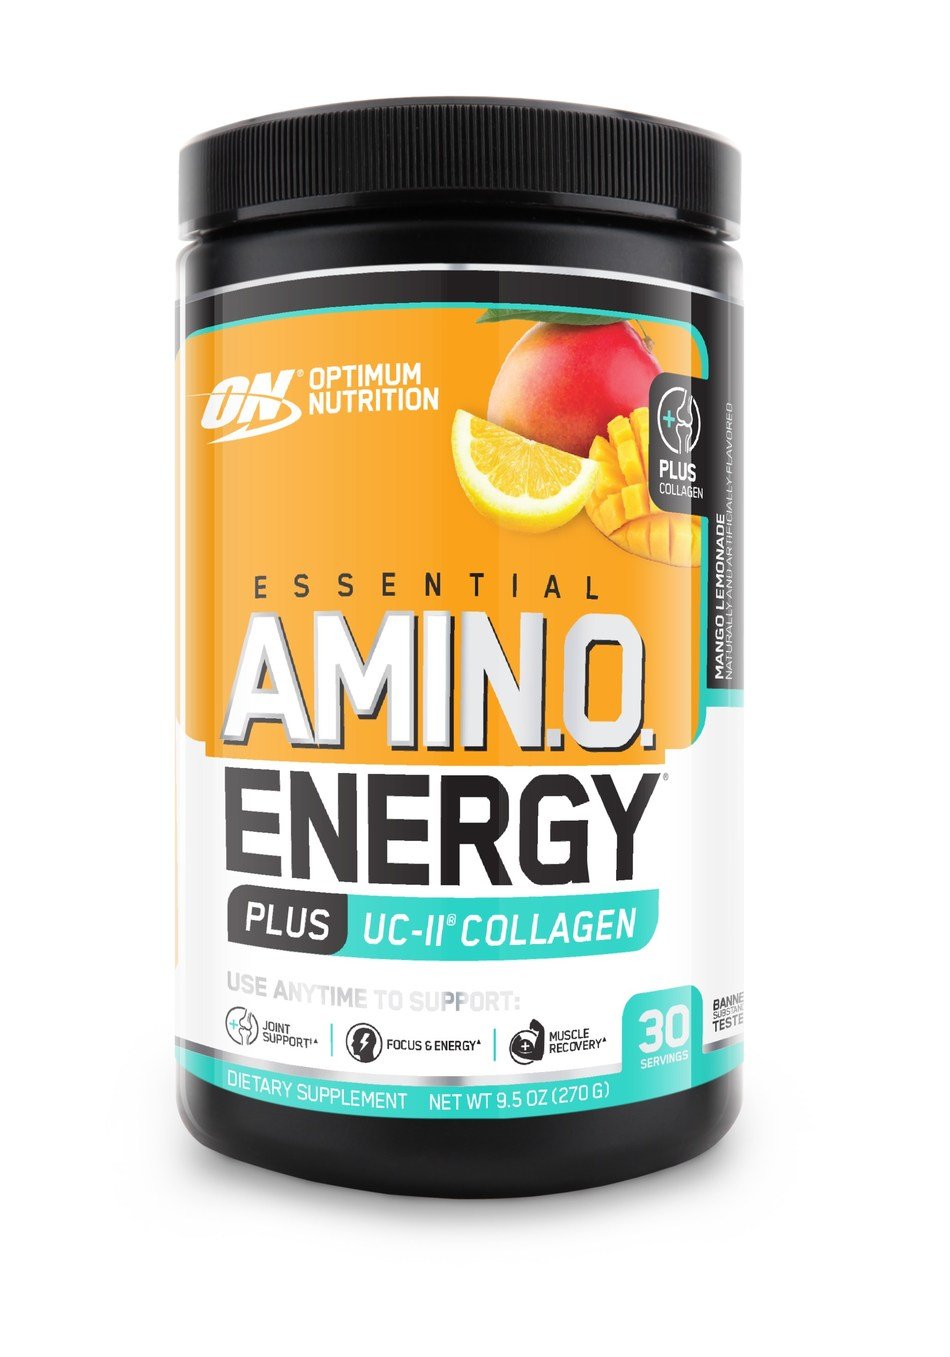 OPTIMUM NUTRITION introduces a new variety of its popular anytime energy beverage mix with UC-II® Collagen for Joint Support. ESSENTIAL AMIN.O. ENERGY PLUS UC-II® Collagen is available online and at nutrition retailers nationwide.